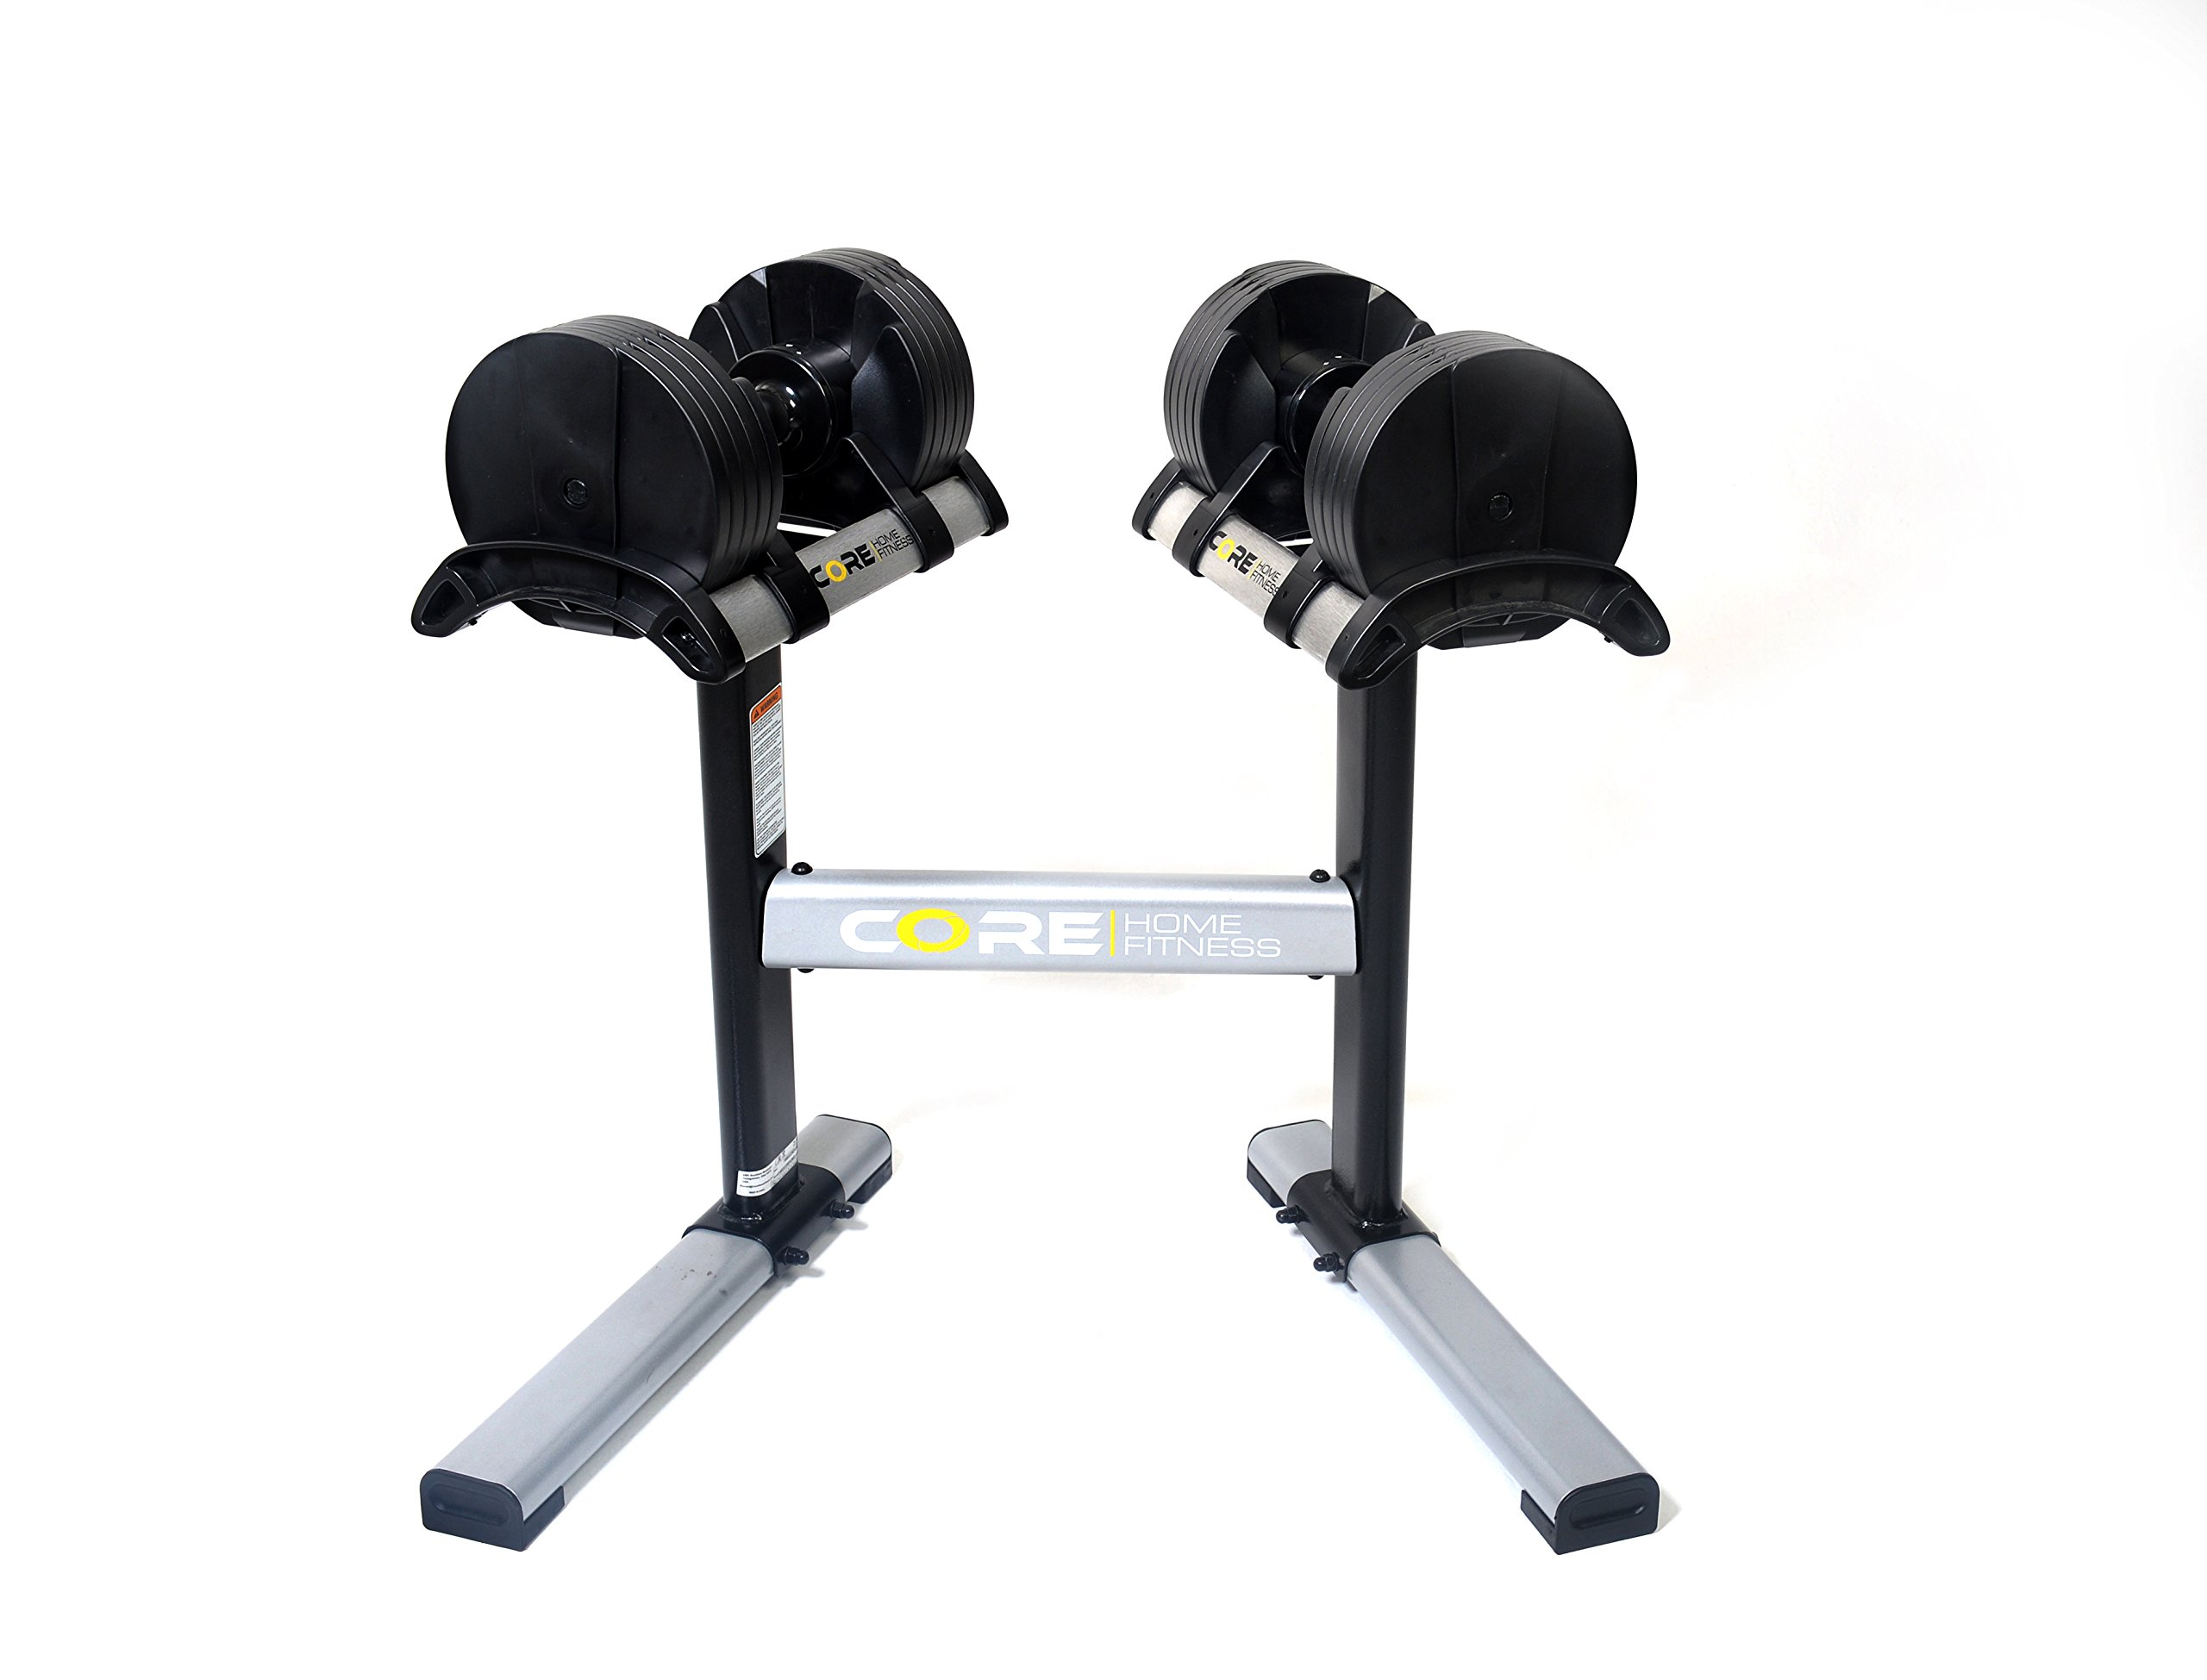 Core Home Fitness Adjustable Dumbbell Set & Stand By Space Saver - Dumbbells For Your Home - Weights -